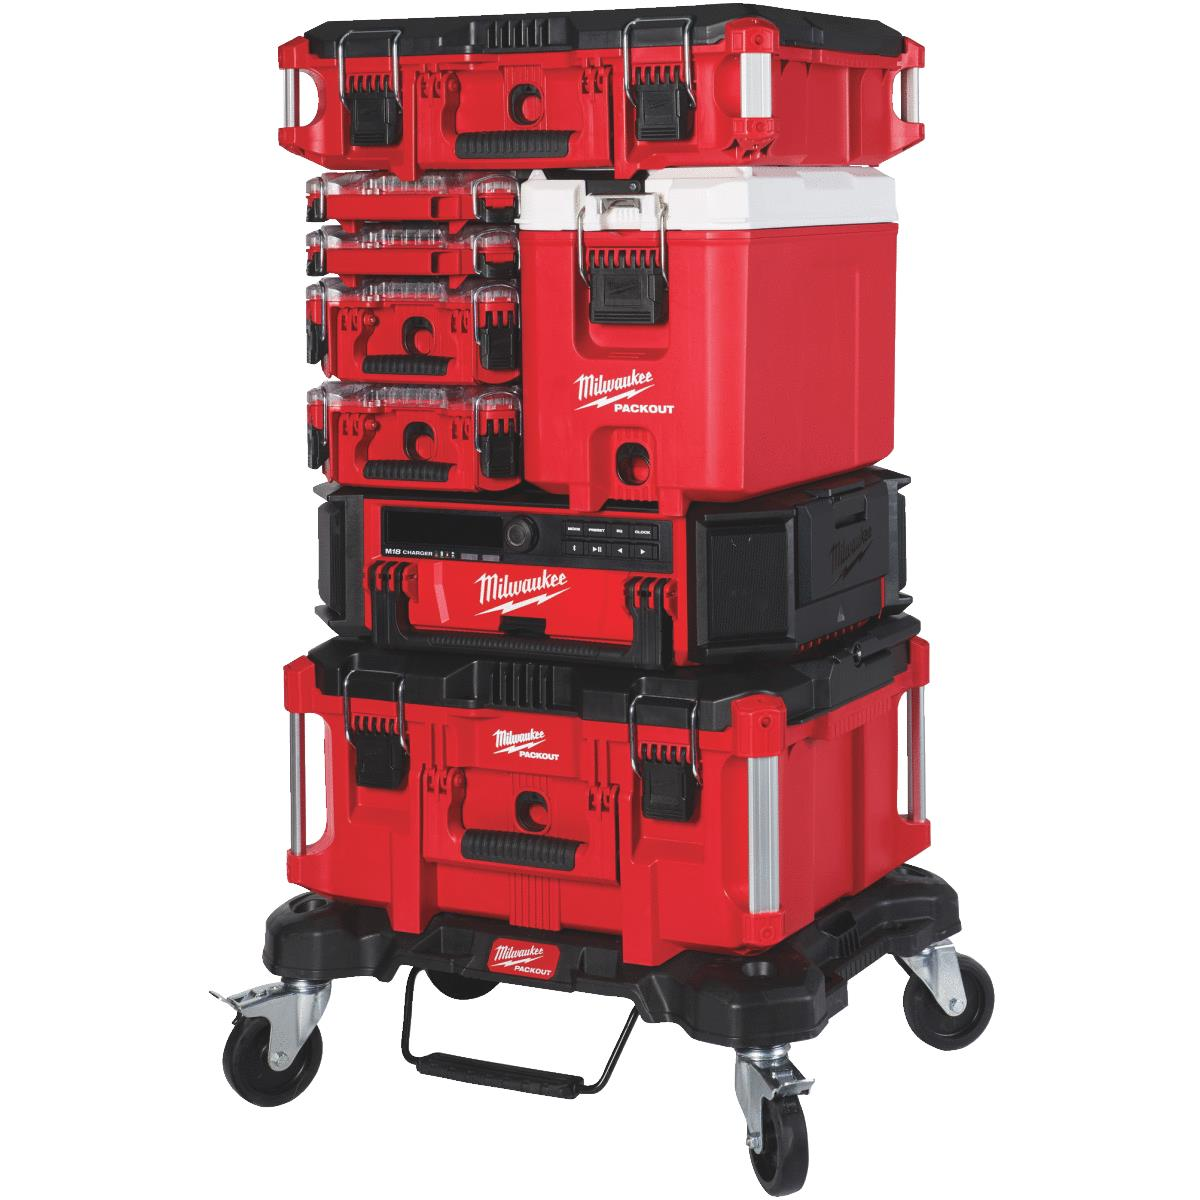 Milwaukee PACKOUT Compact Cooler